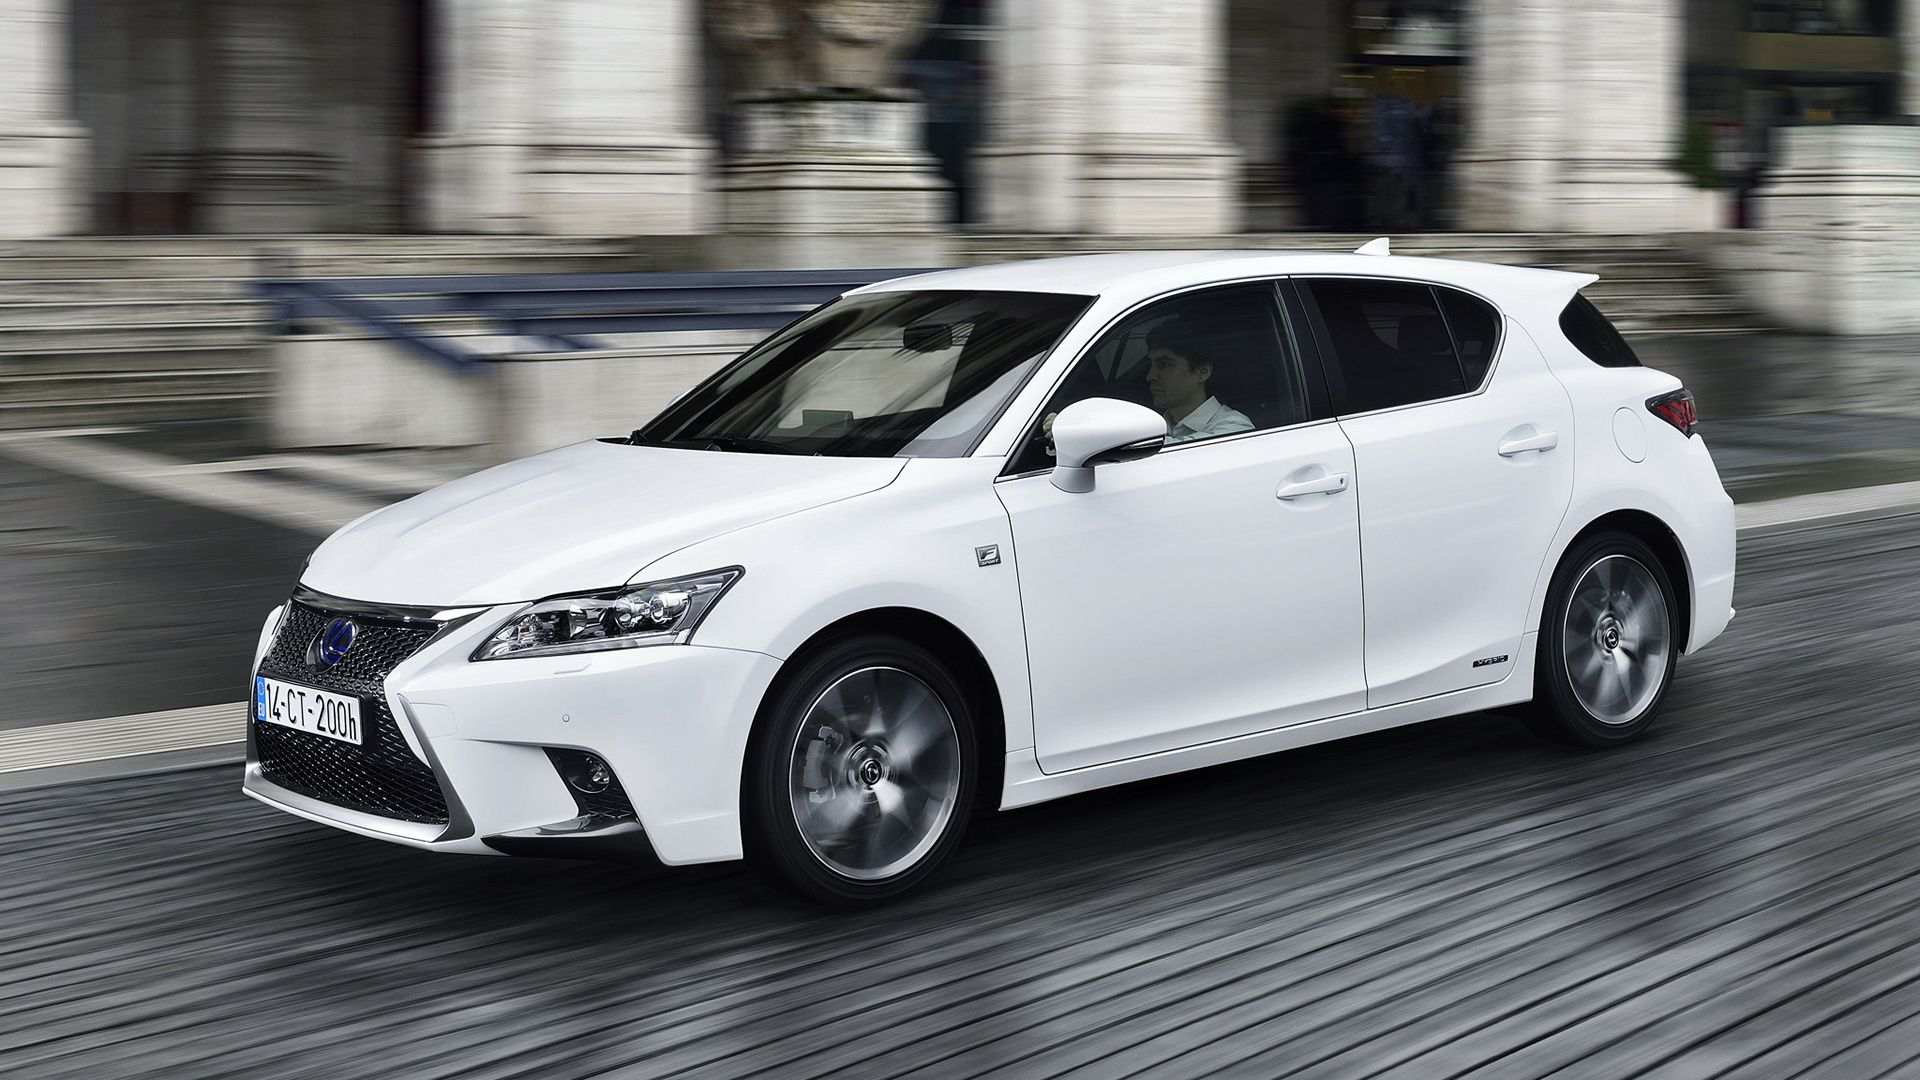 lexus ct 200h f sport wallpaper hd 1920—1080